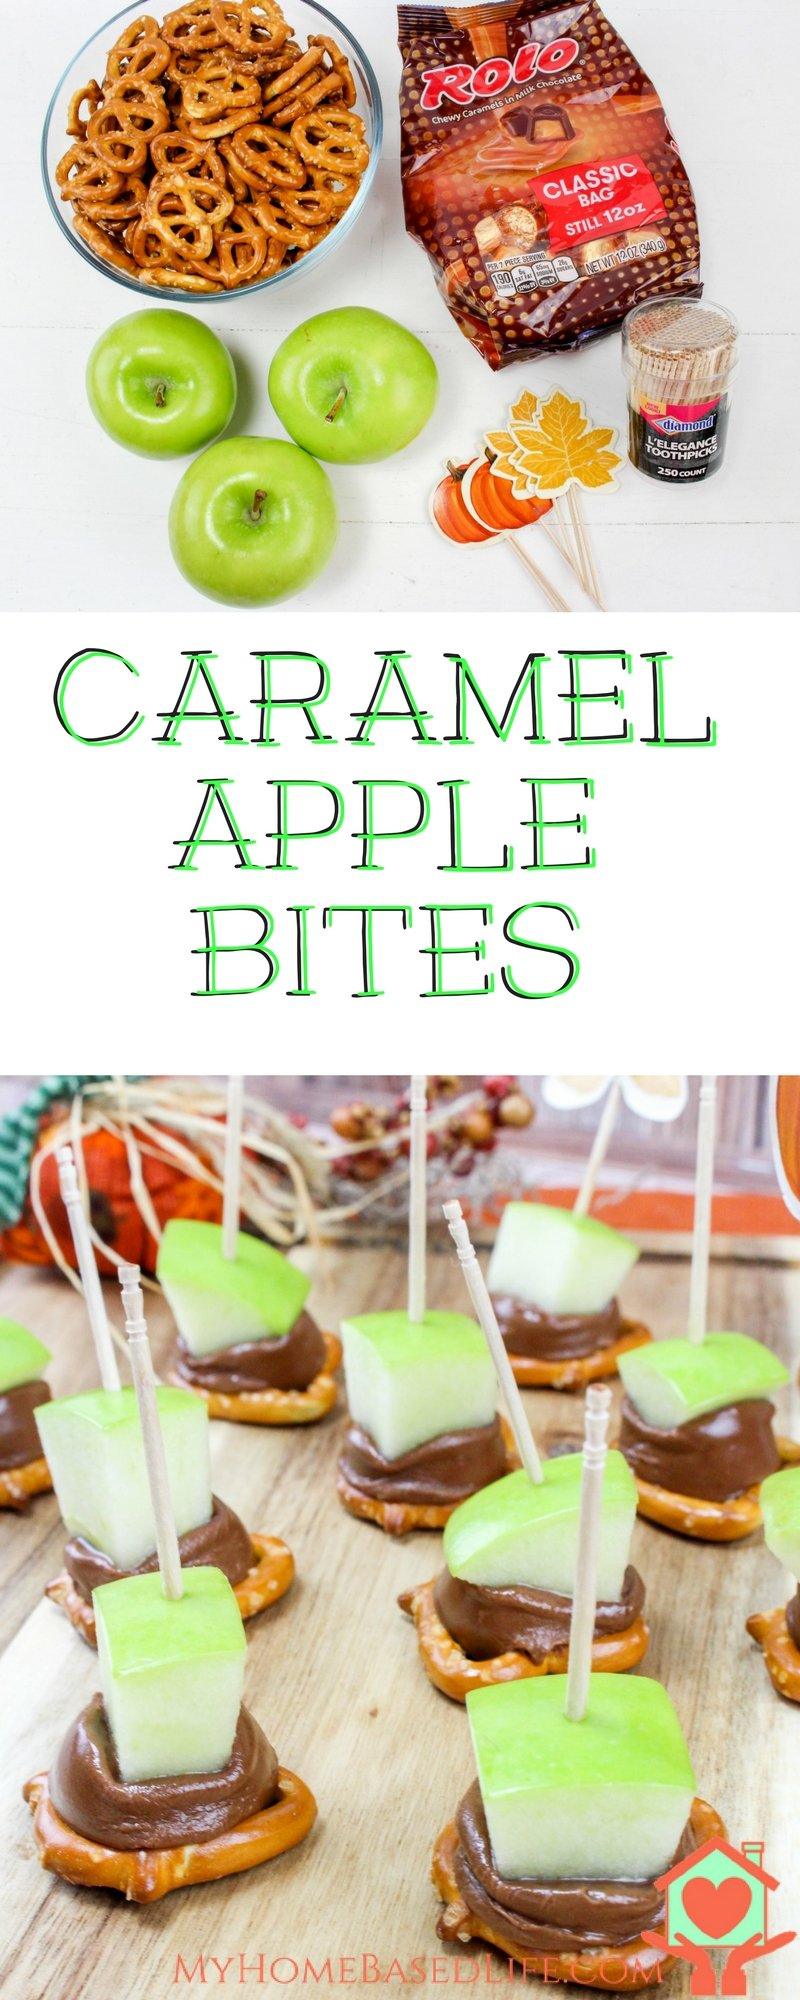 Don't deal with the hassle of trying to eat a caramel apple, make this adorable Caramel Apple Bites instead! The Perfect apple appetizer recipe for fall. #caramelapple #appetizer #fall #applerecipes #myhomebasedlife | Caramel Apple Bites | Apple Desserts | DIY Caramel Apples | Mini Caramel Apples | Caramel Apple Recipe | Fall Apple Recipe | Apple Recipe |